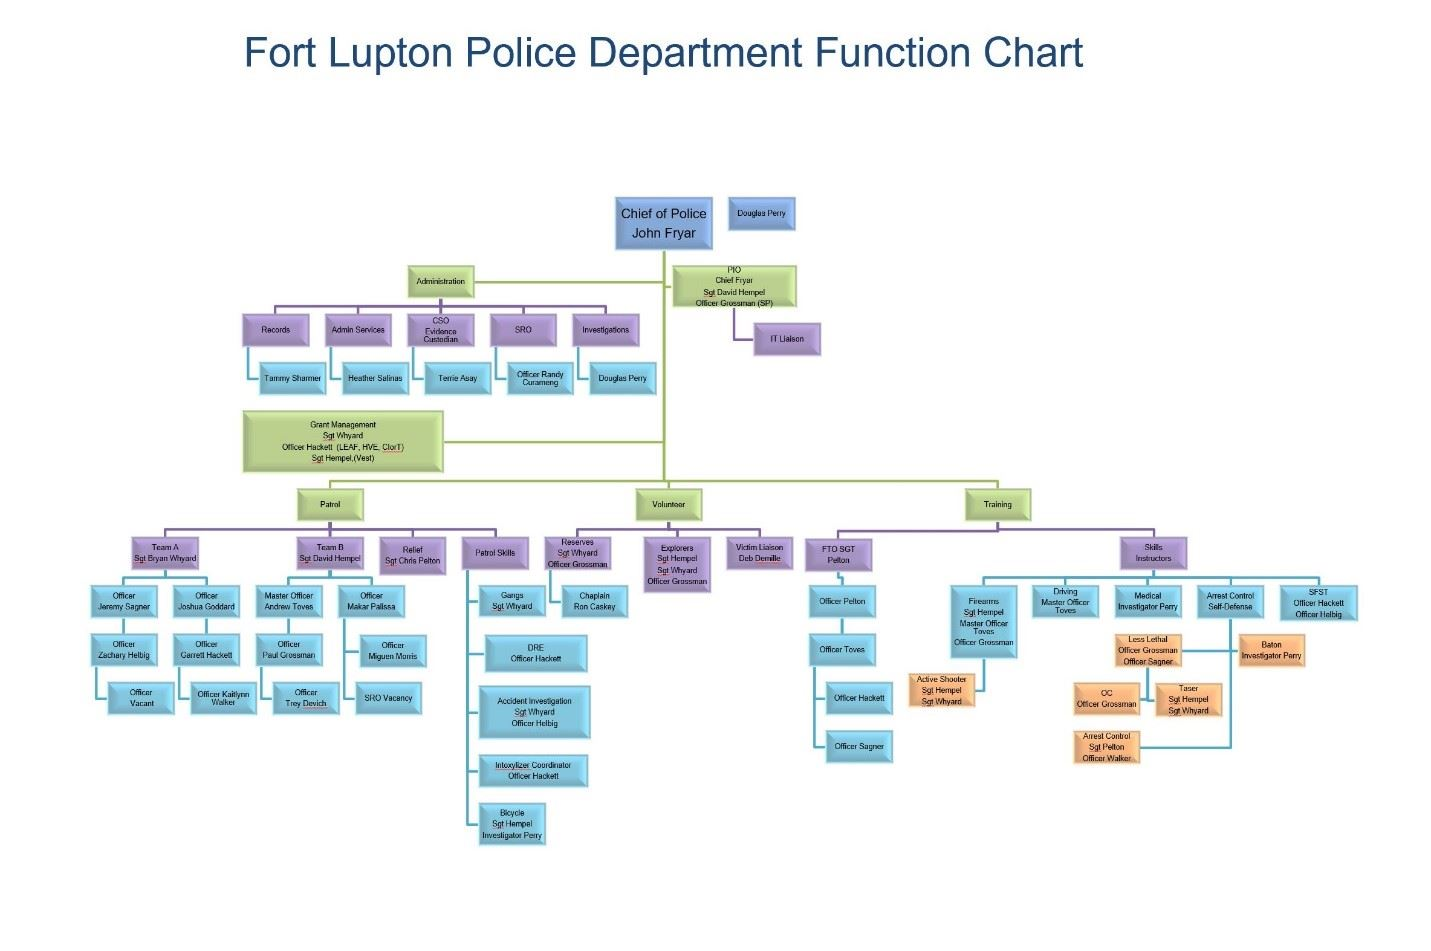 Function Chart